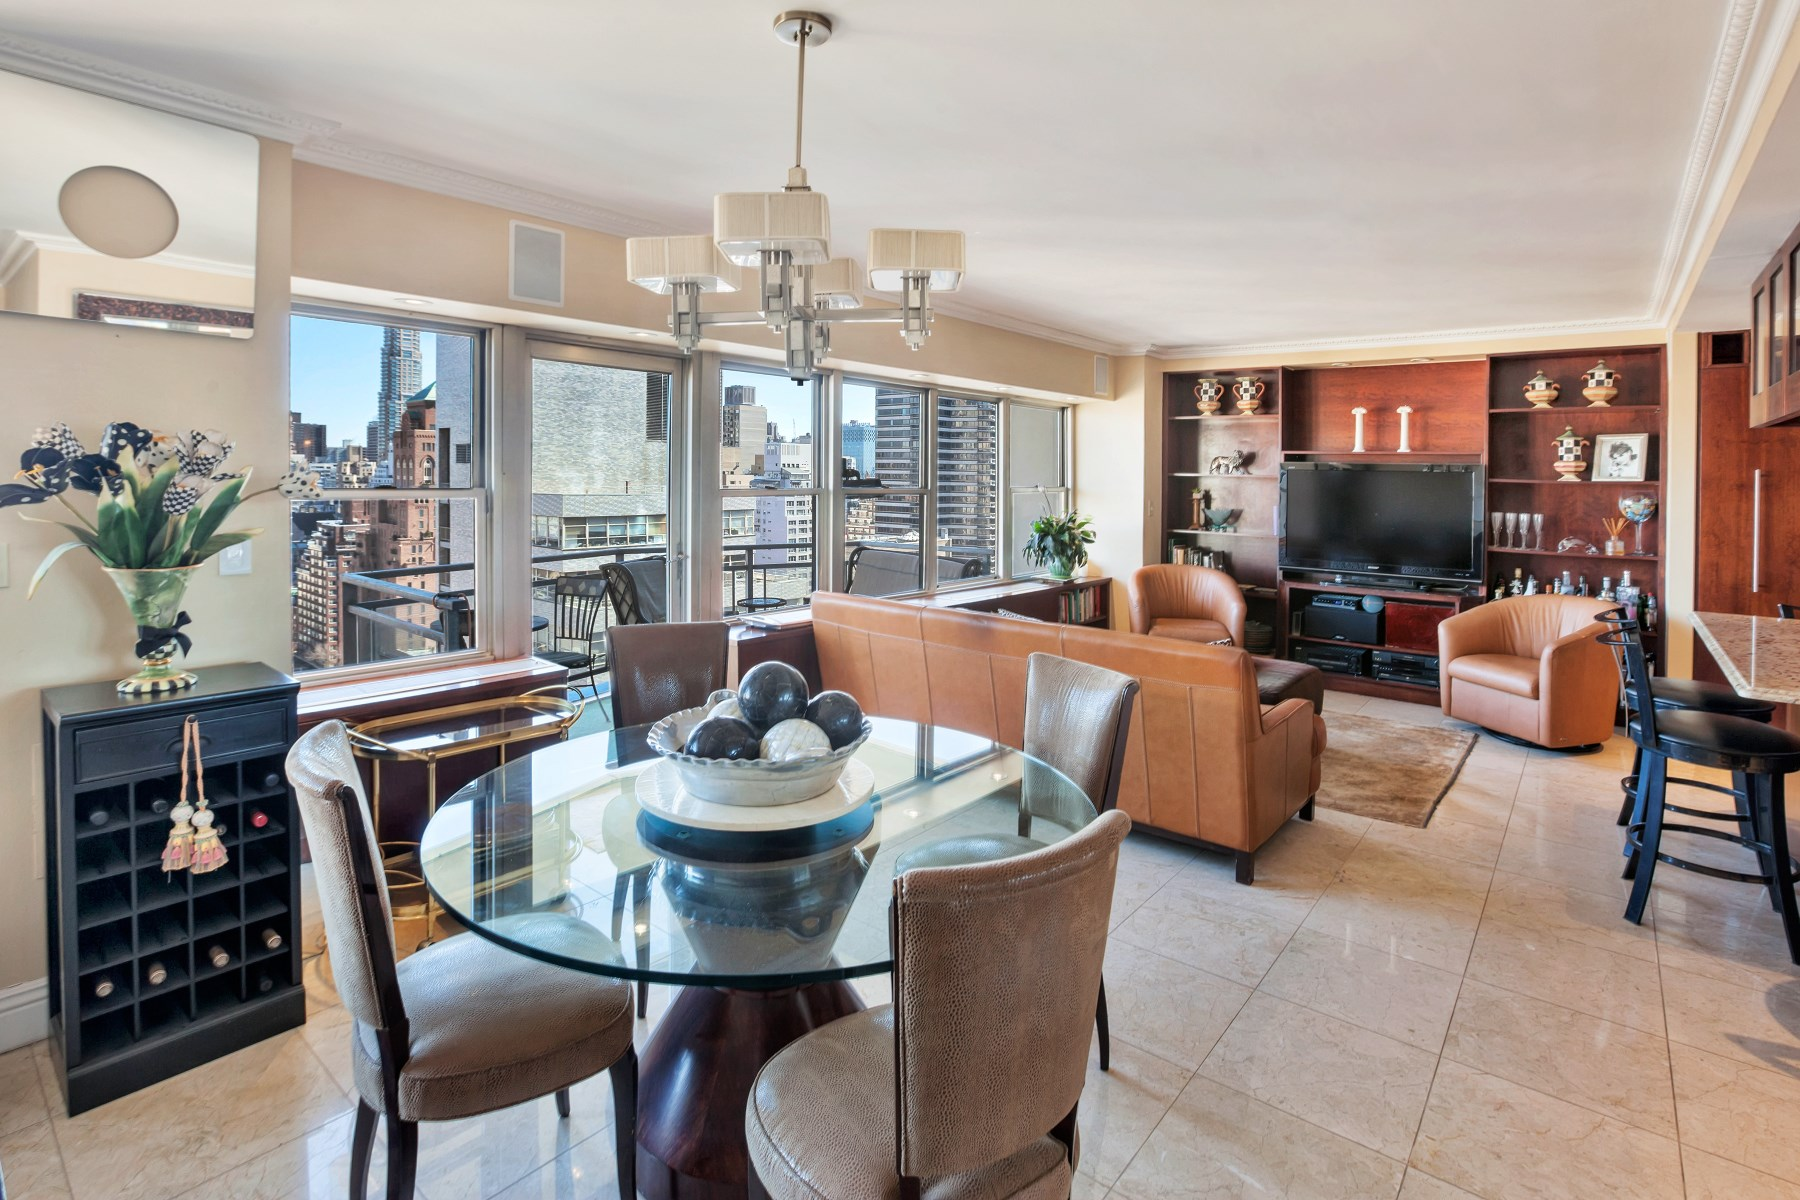 Co-op for Sale at 118 East 60th Street, Apt 24BC 118 East 60th Street Apt 24BC, Upper East Side, New York, New York, 10022 United States